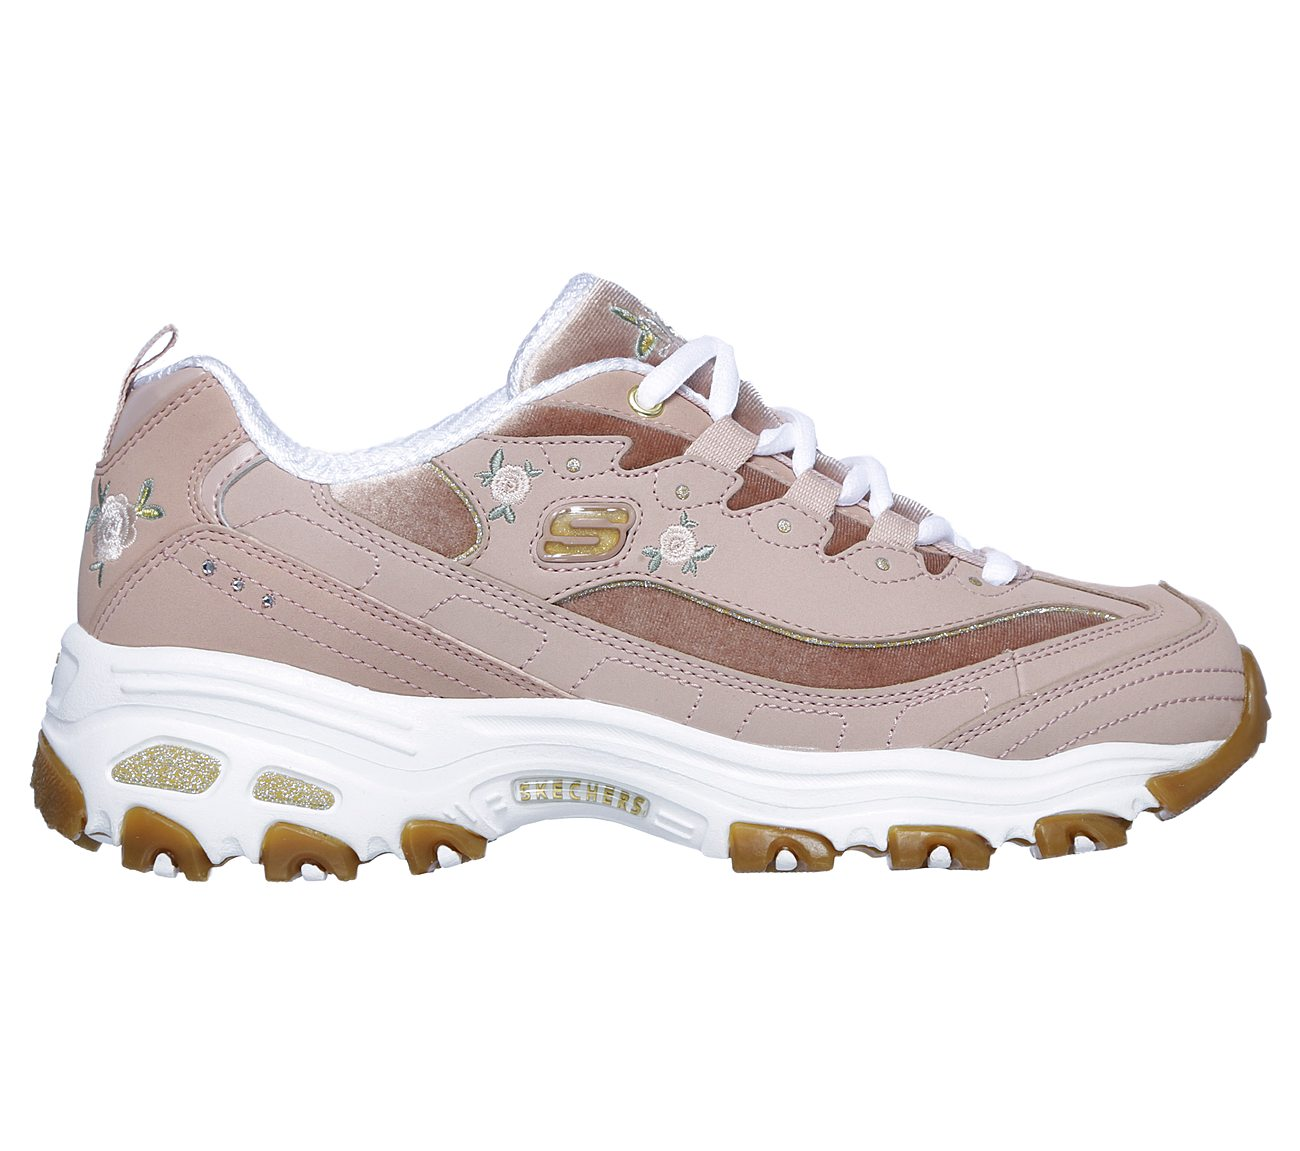 8f4925675fe9 Buy SKECHERS D Lites - Rose Blooms D Lites Shoes only  70.00